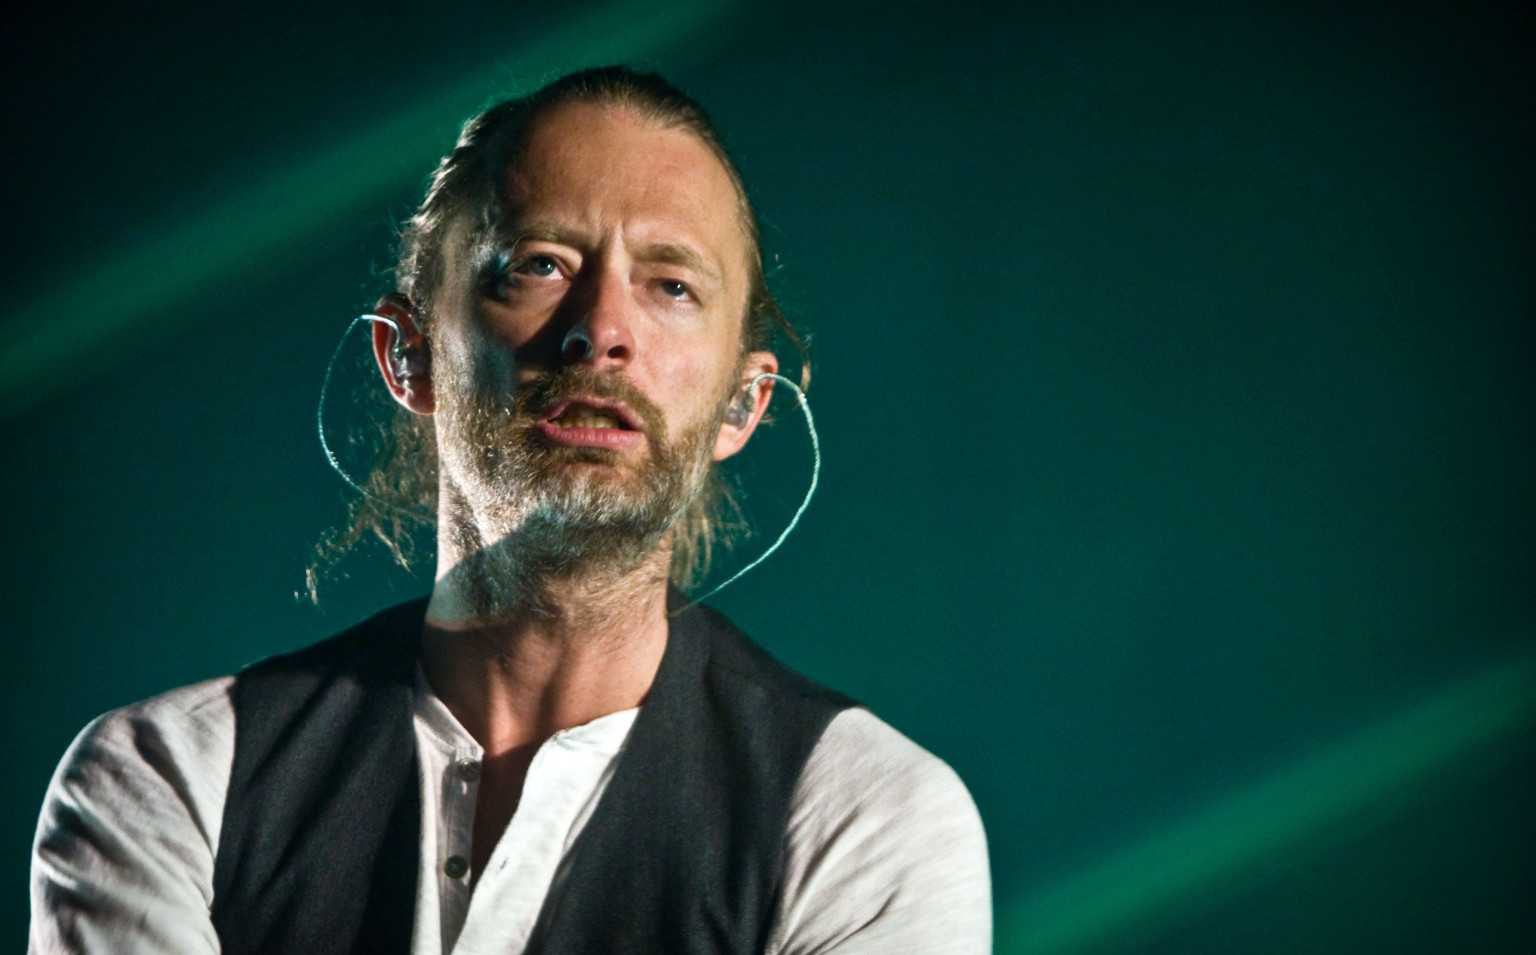 Radiohead's Frontman Thom Yorke Predicts The End Of Spotify